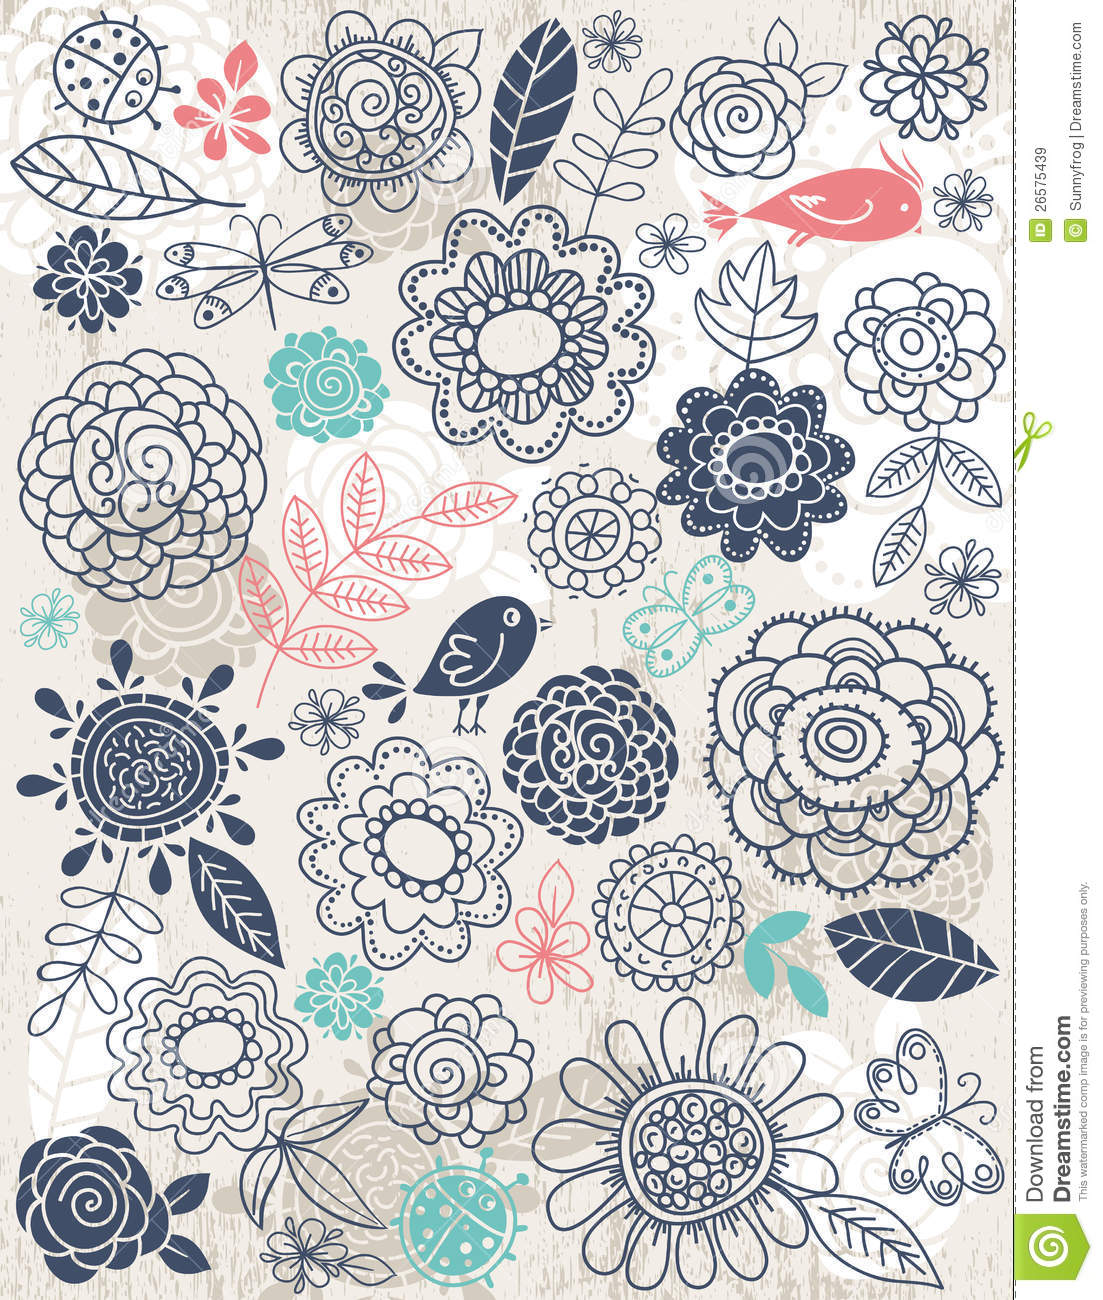 Flower Drawing Background at GetDrawings com | Free for